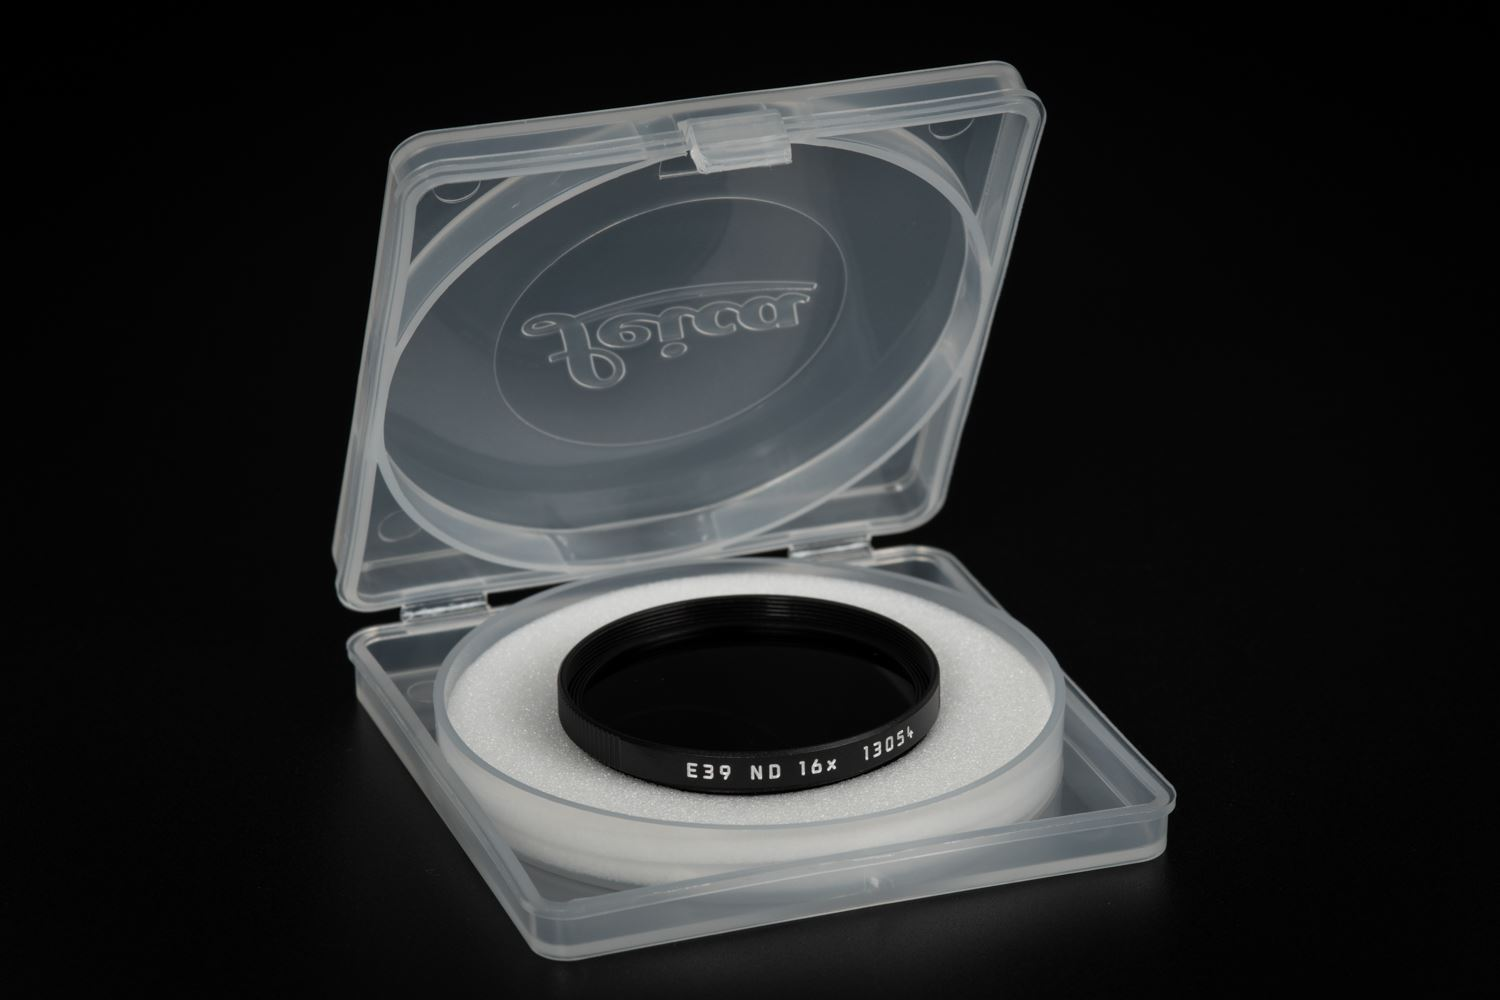 Picture of Leica Filter ND 16x E39, black